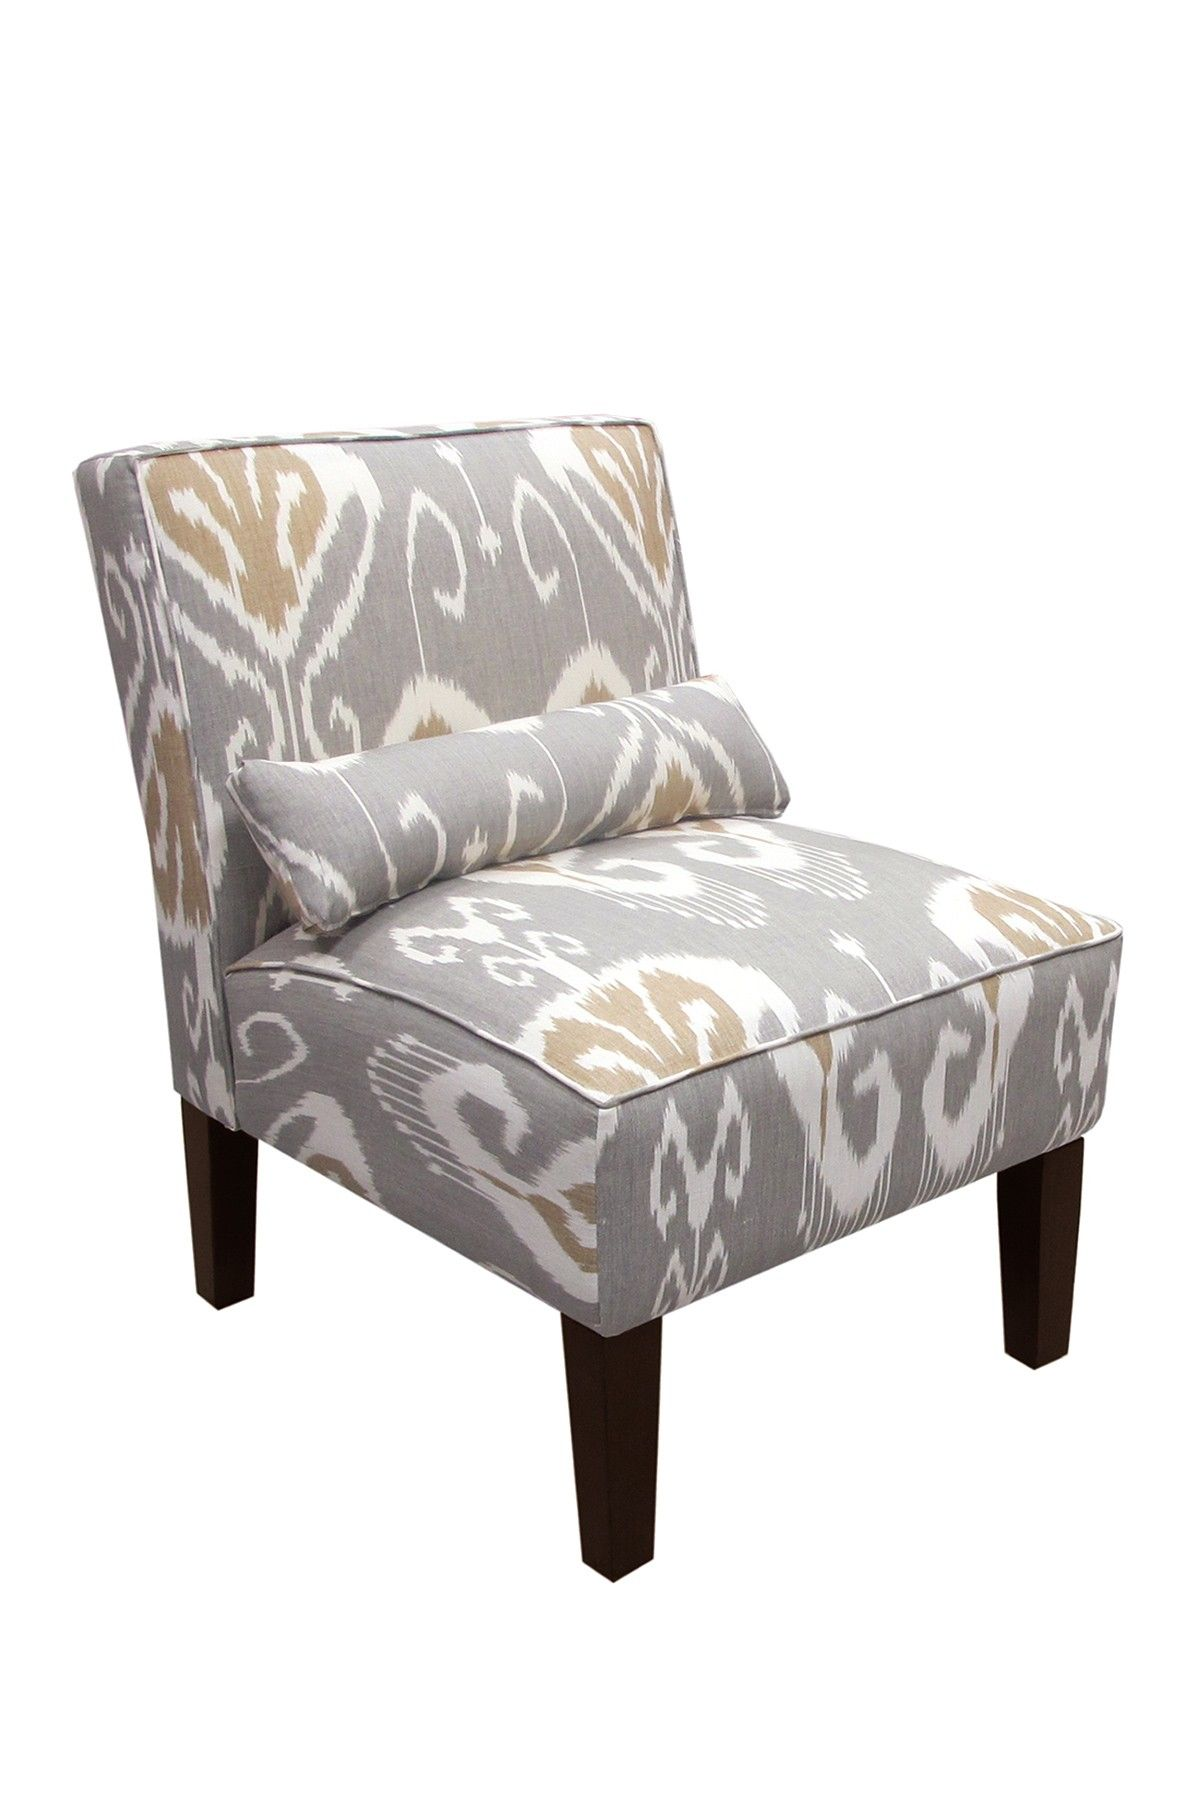 Desert Flower Chair Floral Accent Chairs Upholstered Chairs